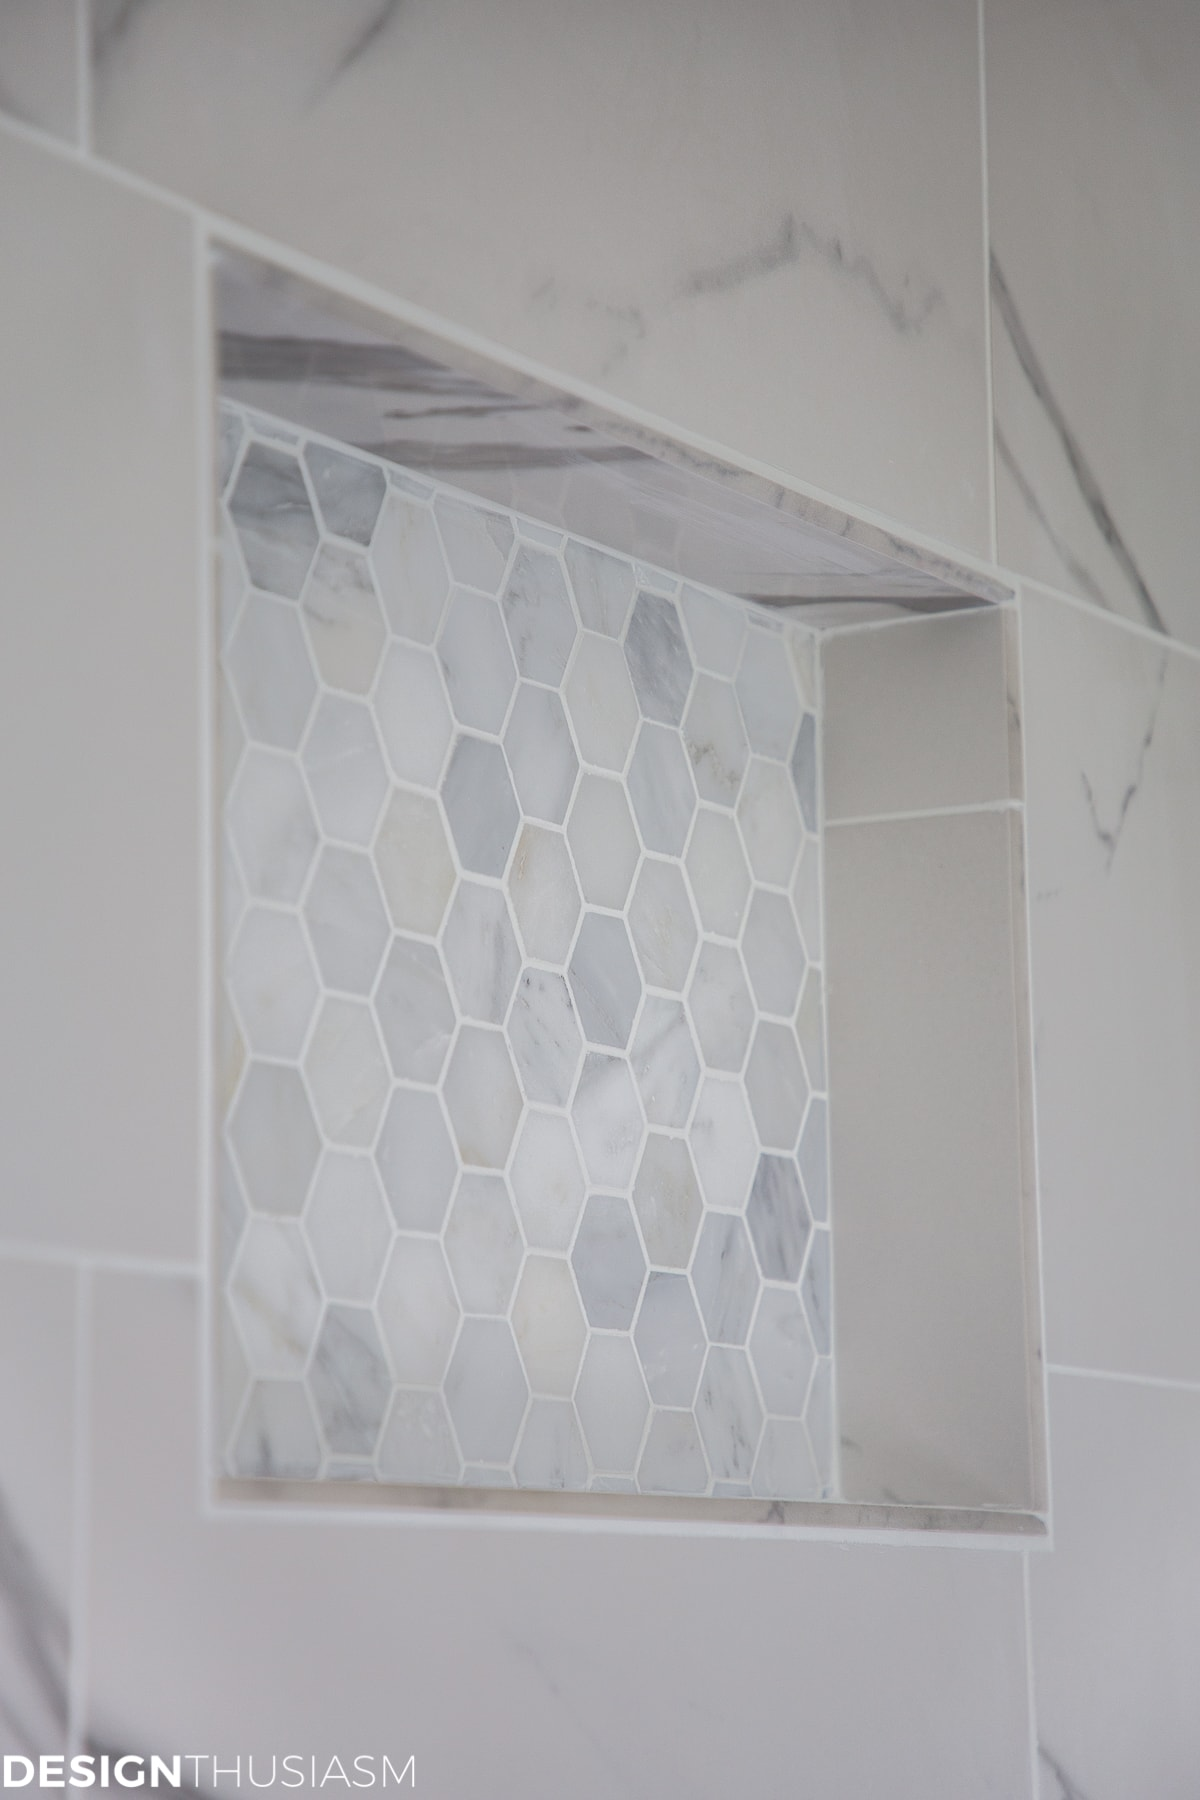 Using bathroom tiles to transform a builder's grade master bath - designthusiasm.com